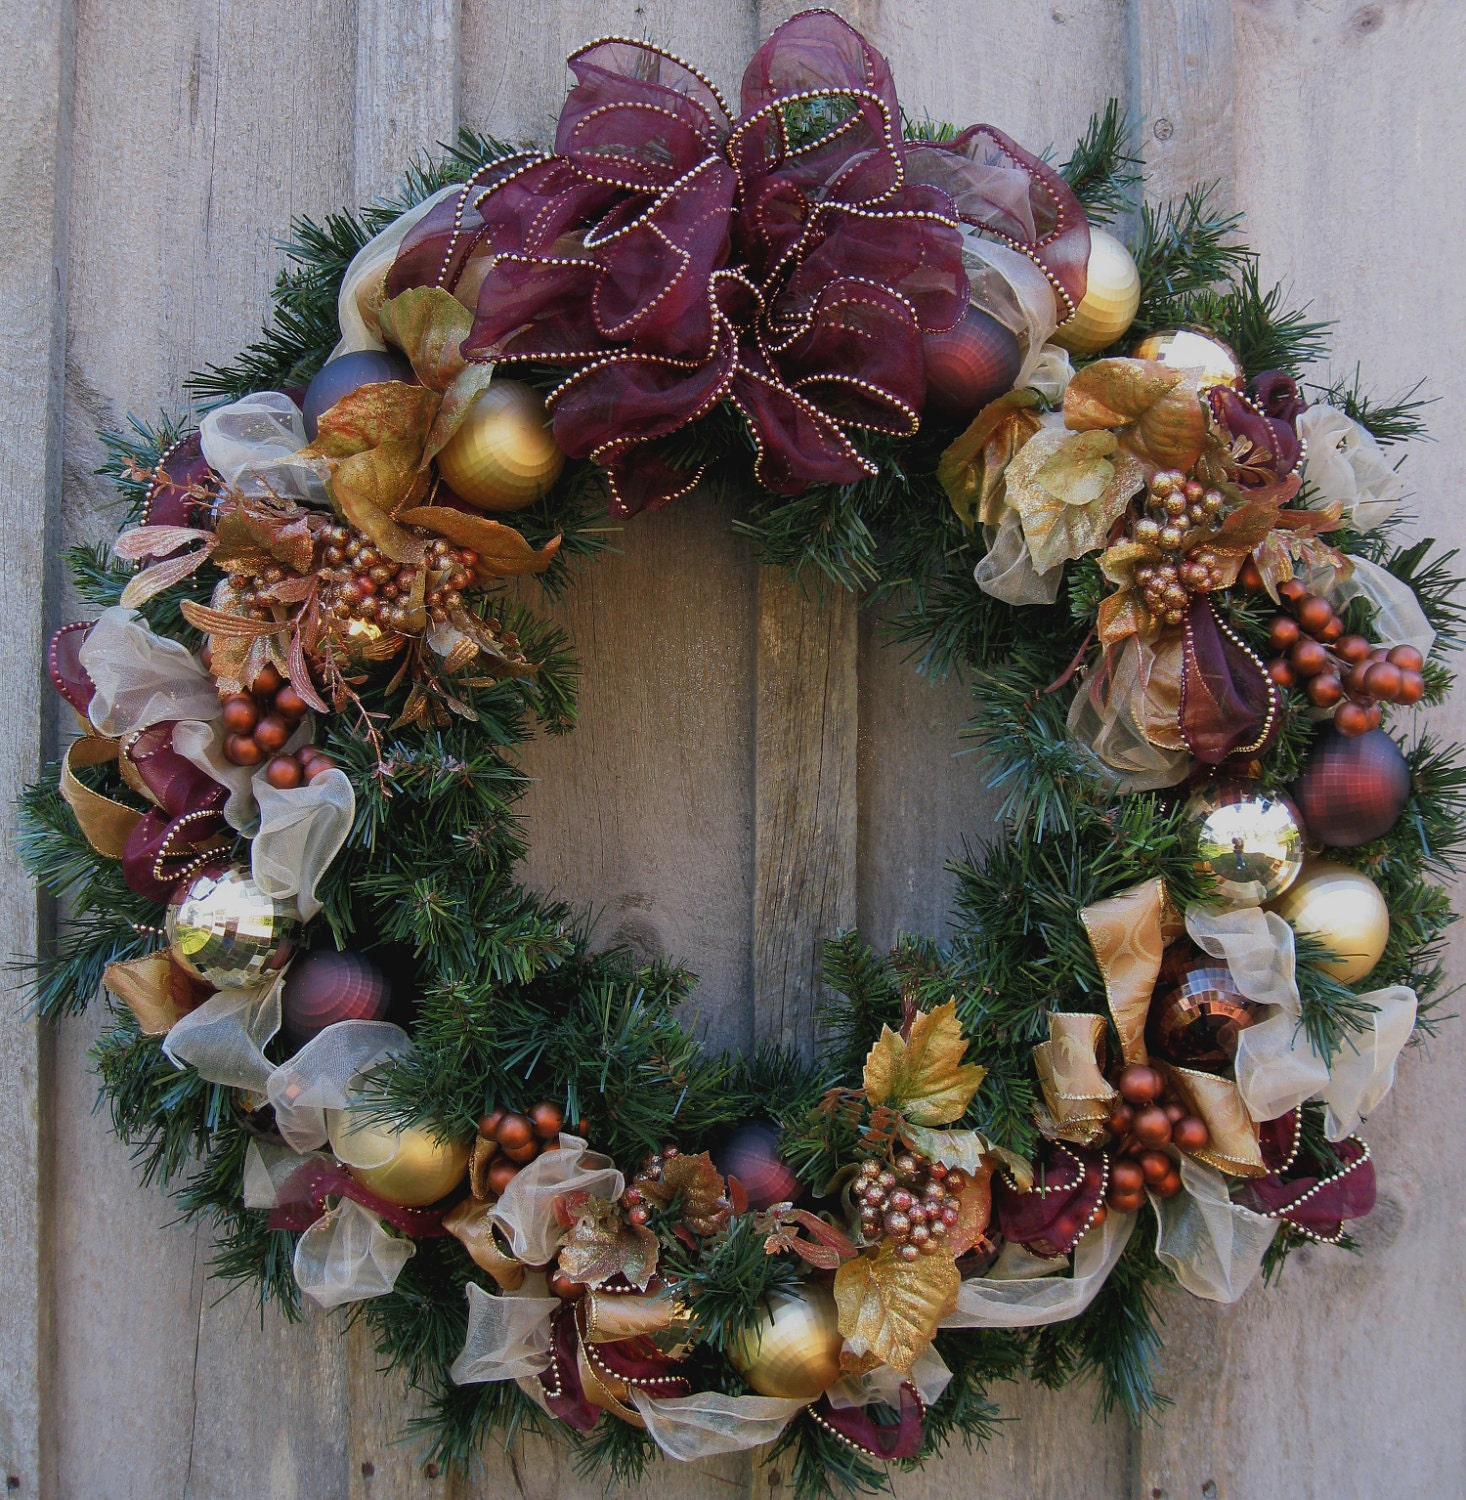 Christmas wreath holiday victorian wreath elegant designer Christmas wreath decorations